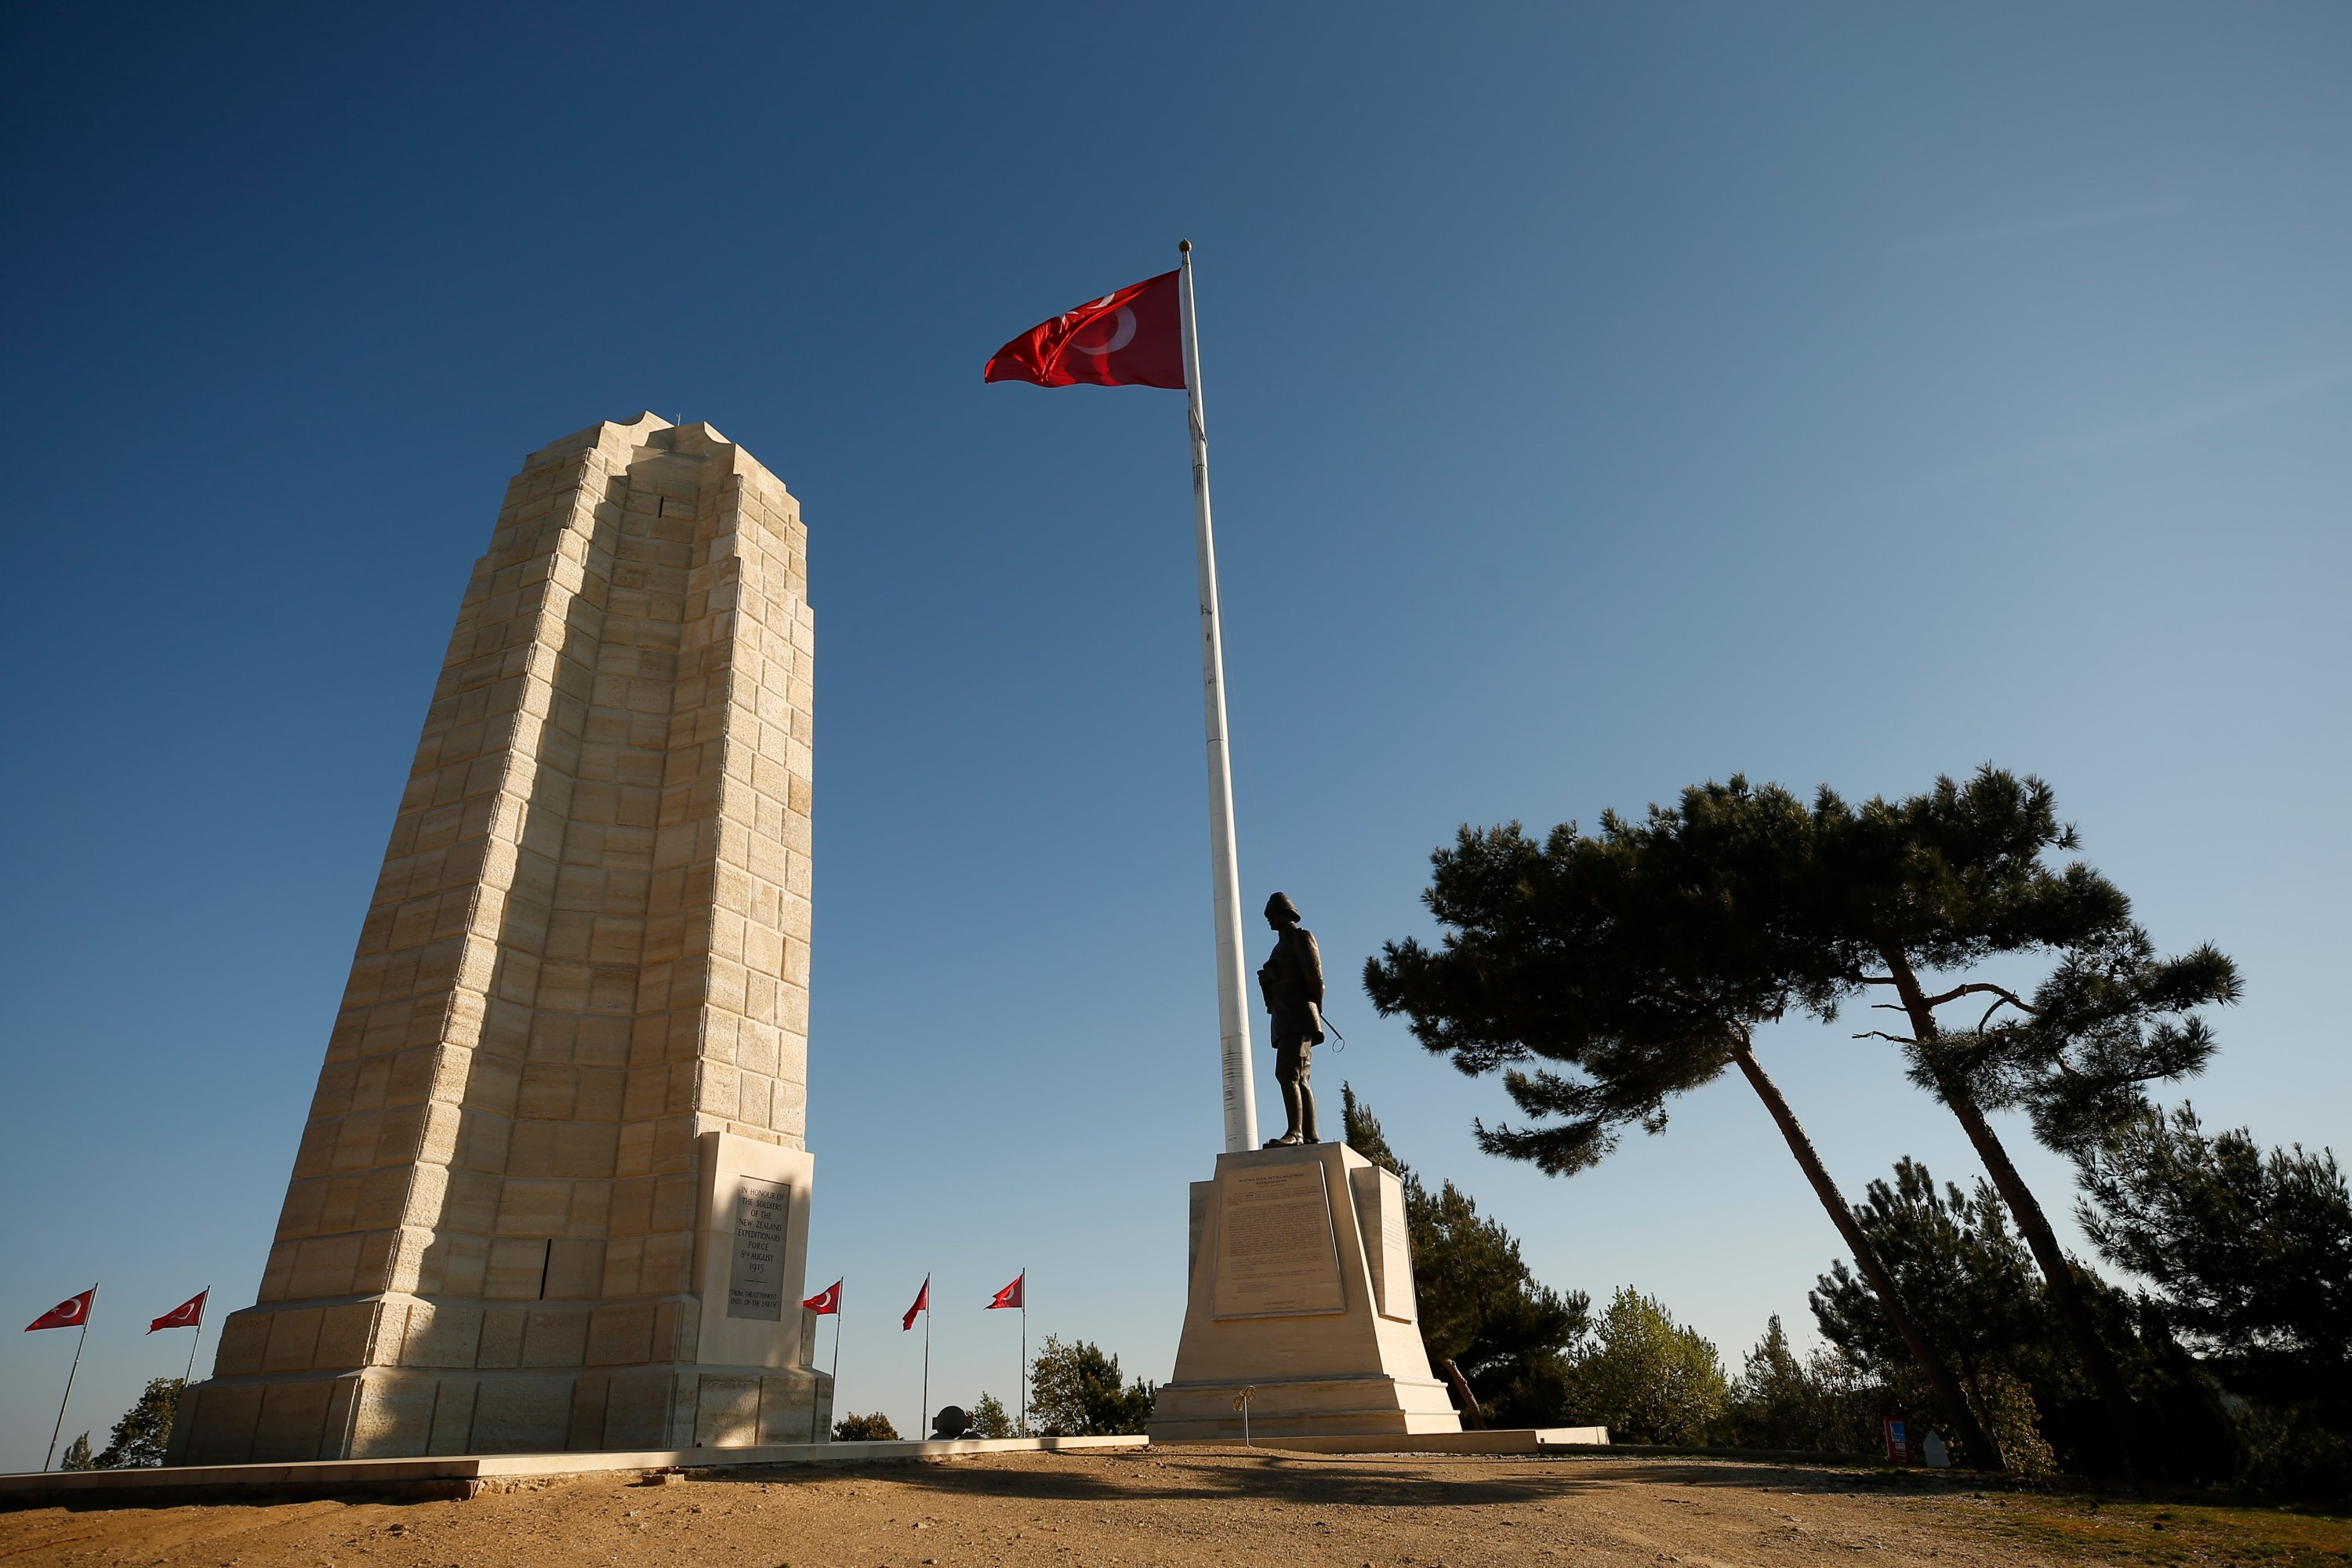 A view of the Chunuk Bair (New Zealand) Memorial, one of four memorials erected to commemorate New Zealand soldiers who died on the Gallipoli peninsula and whose graves are not known, in Çanakkale, Turkey. (AP Photo)